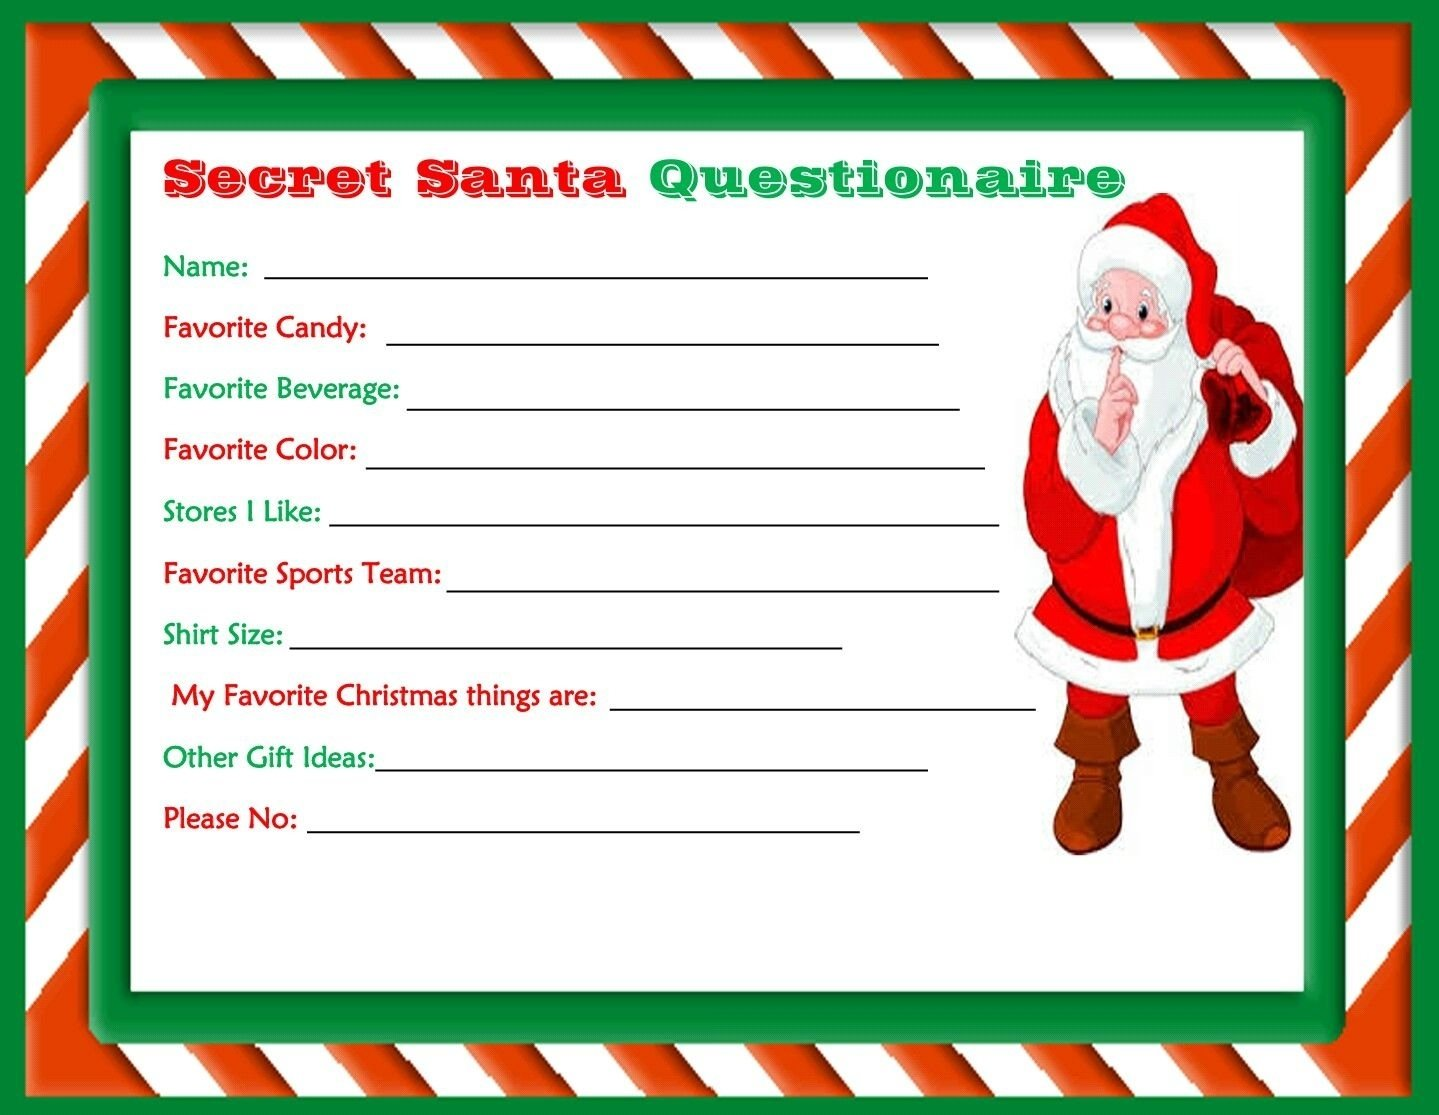 10 Most Recommended Secret Santa Ideas For Work printable secret santa questionaire made dollie wolford 2020